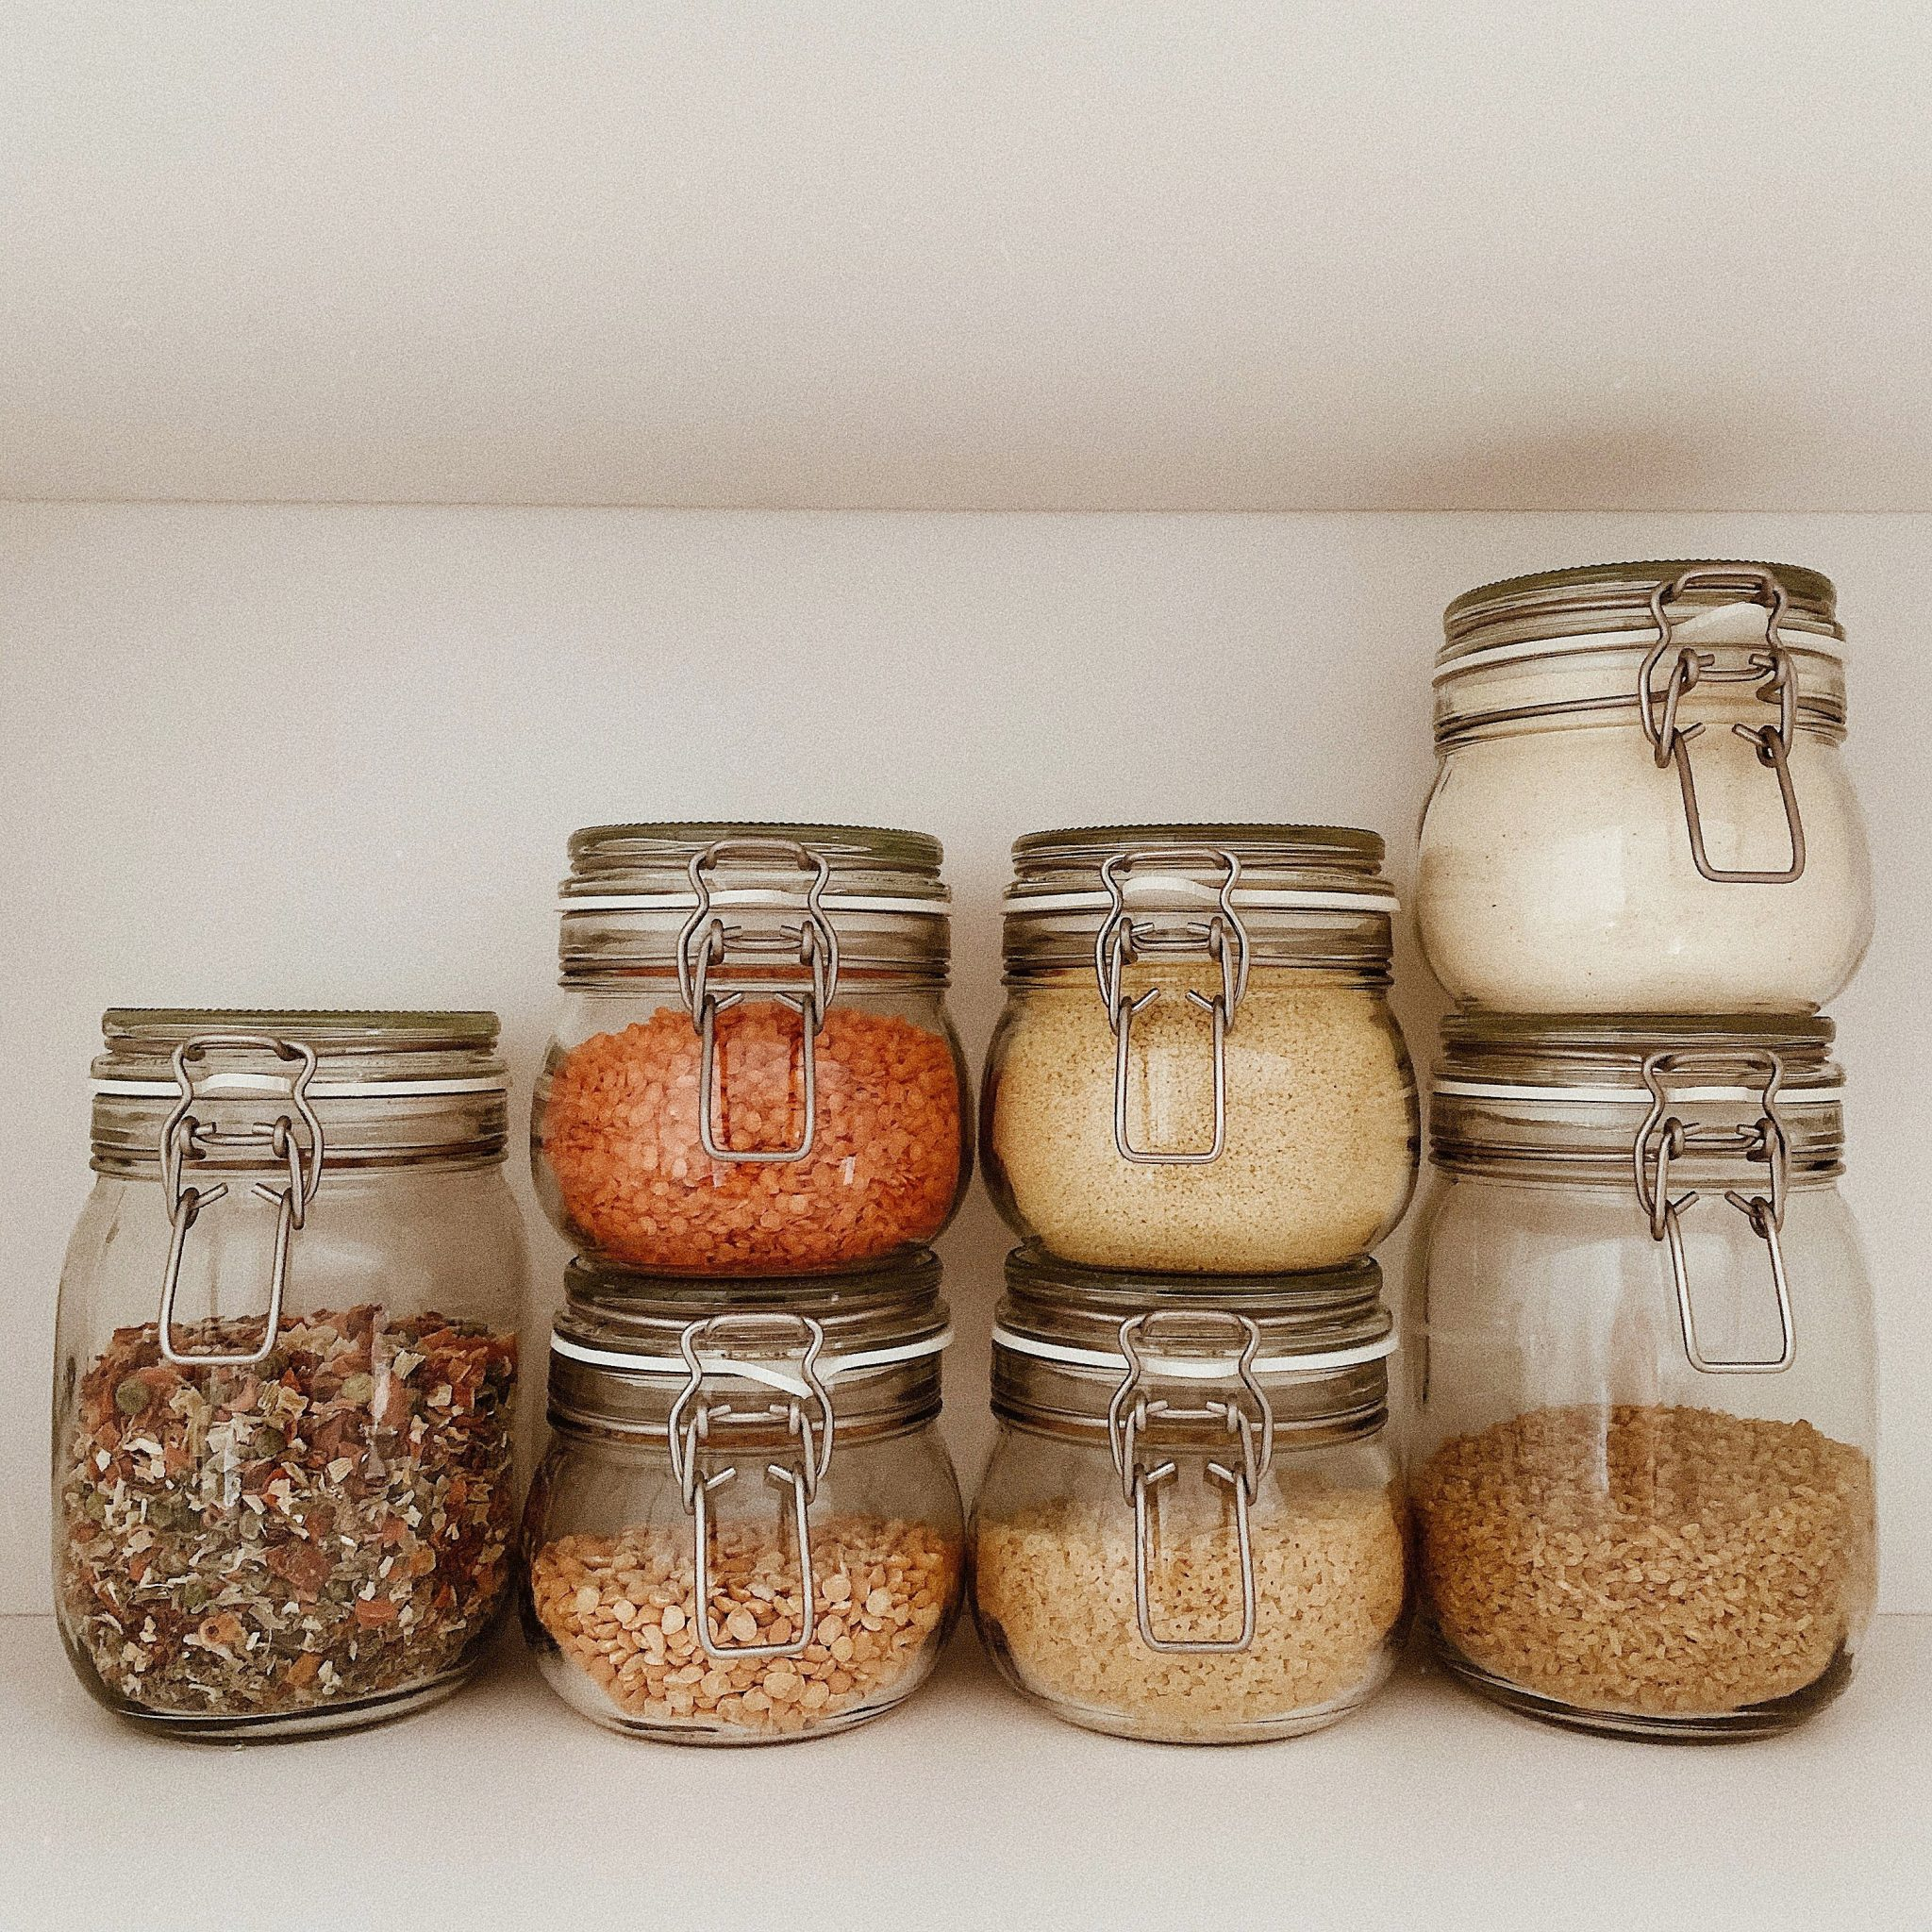 Creative Ways to Organize Your Refrigerator and Pantry